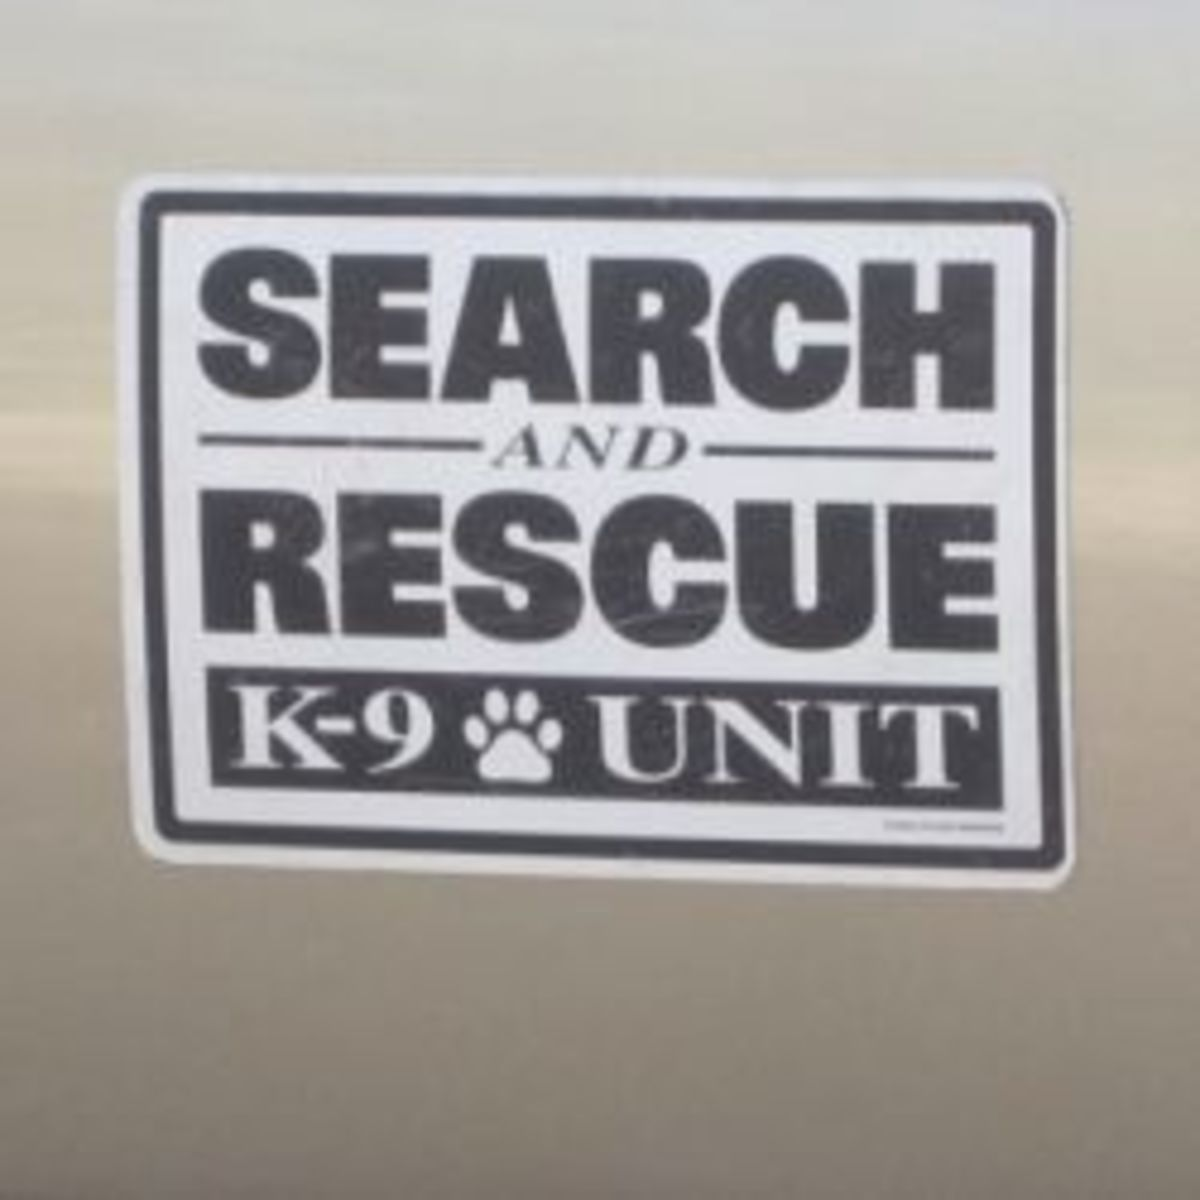 The Annual Arizona K9 Search and Rescue Conference